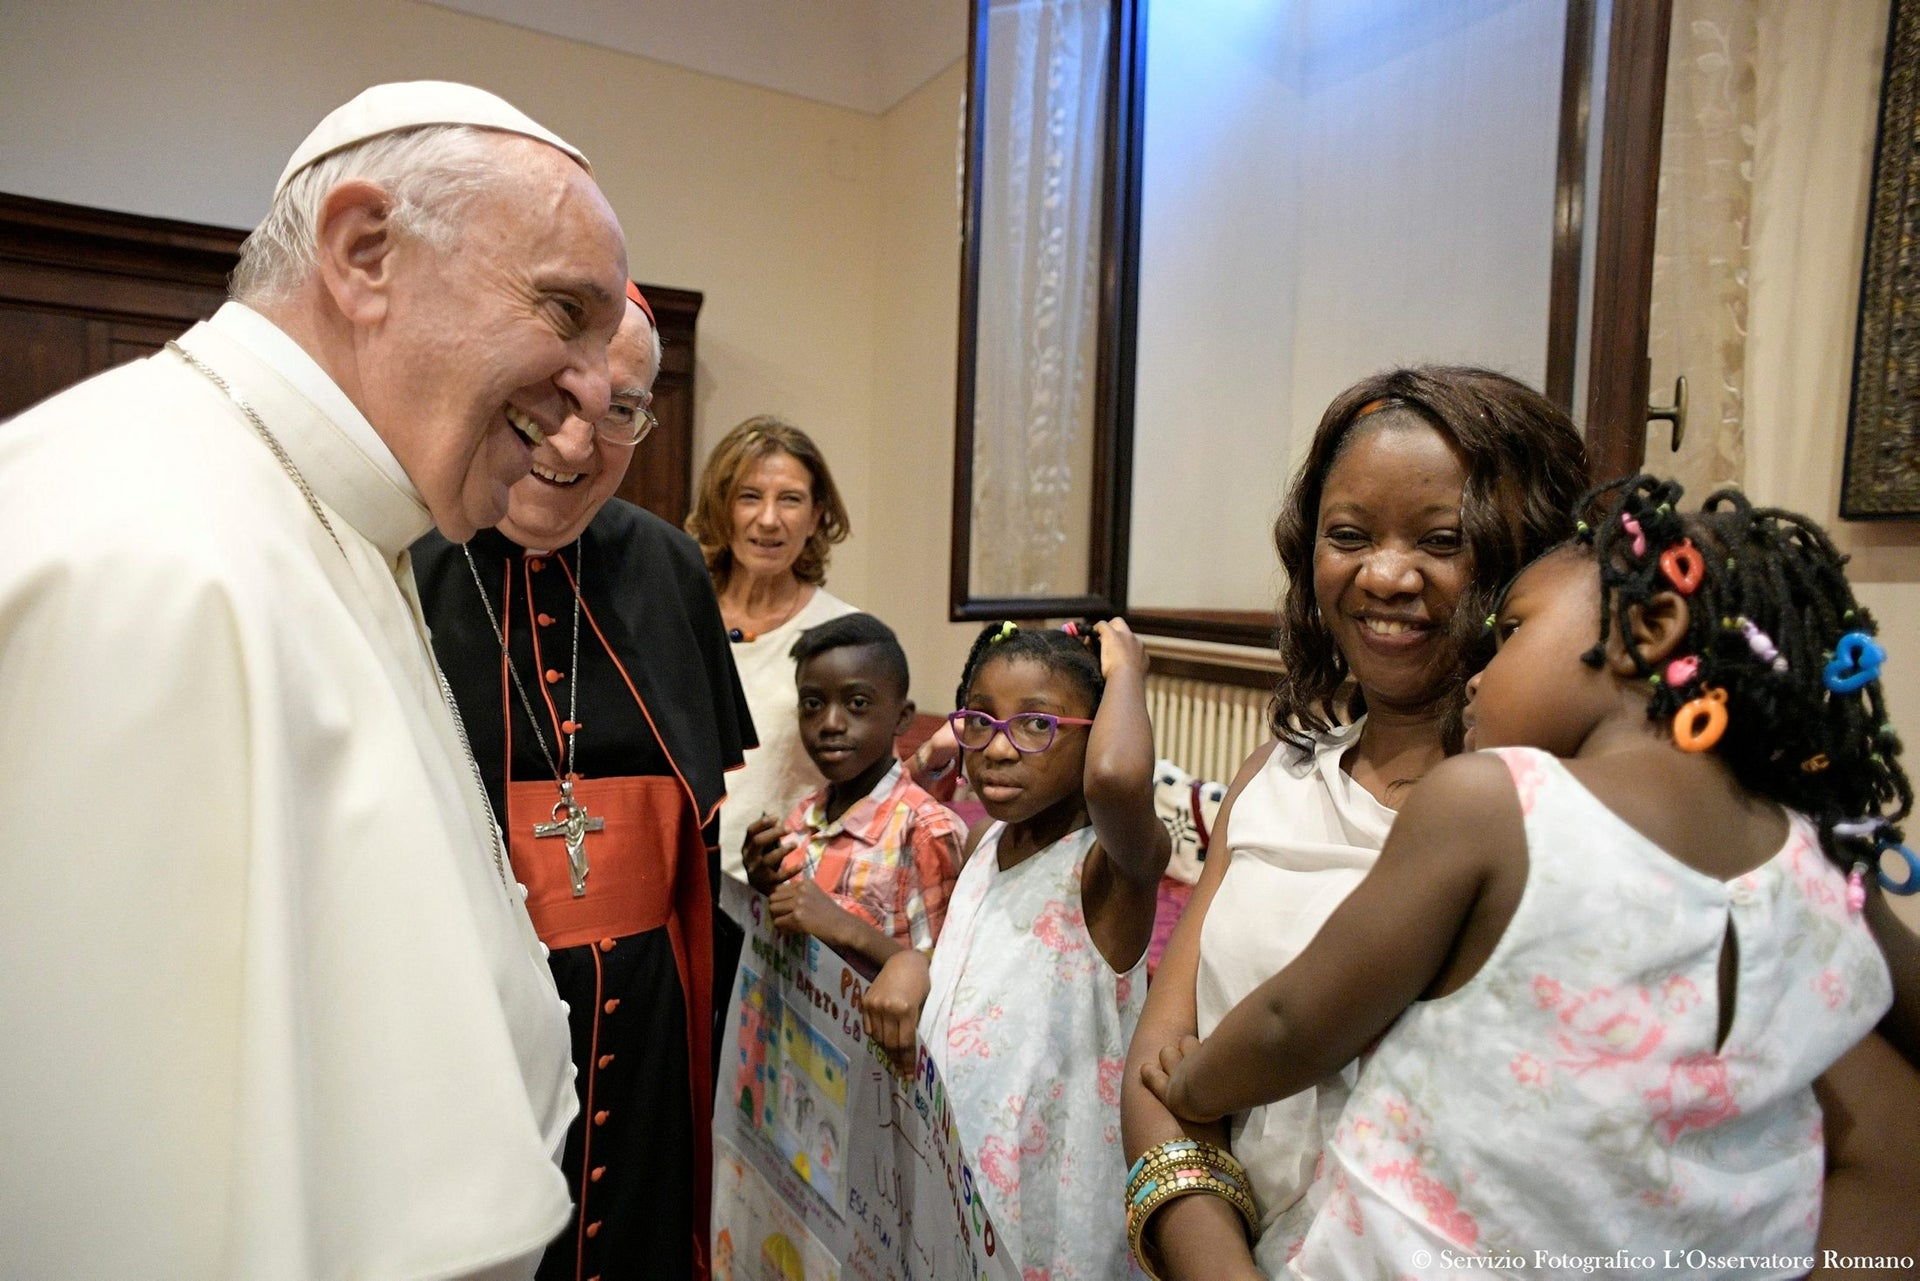 Pope Francis meets a group of refugees at Rome's Basilica of St. John in Lateran, Italy June 19, 2017.